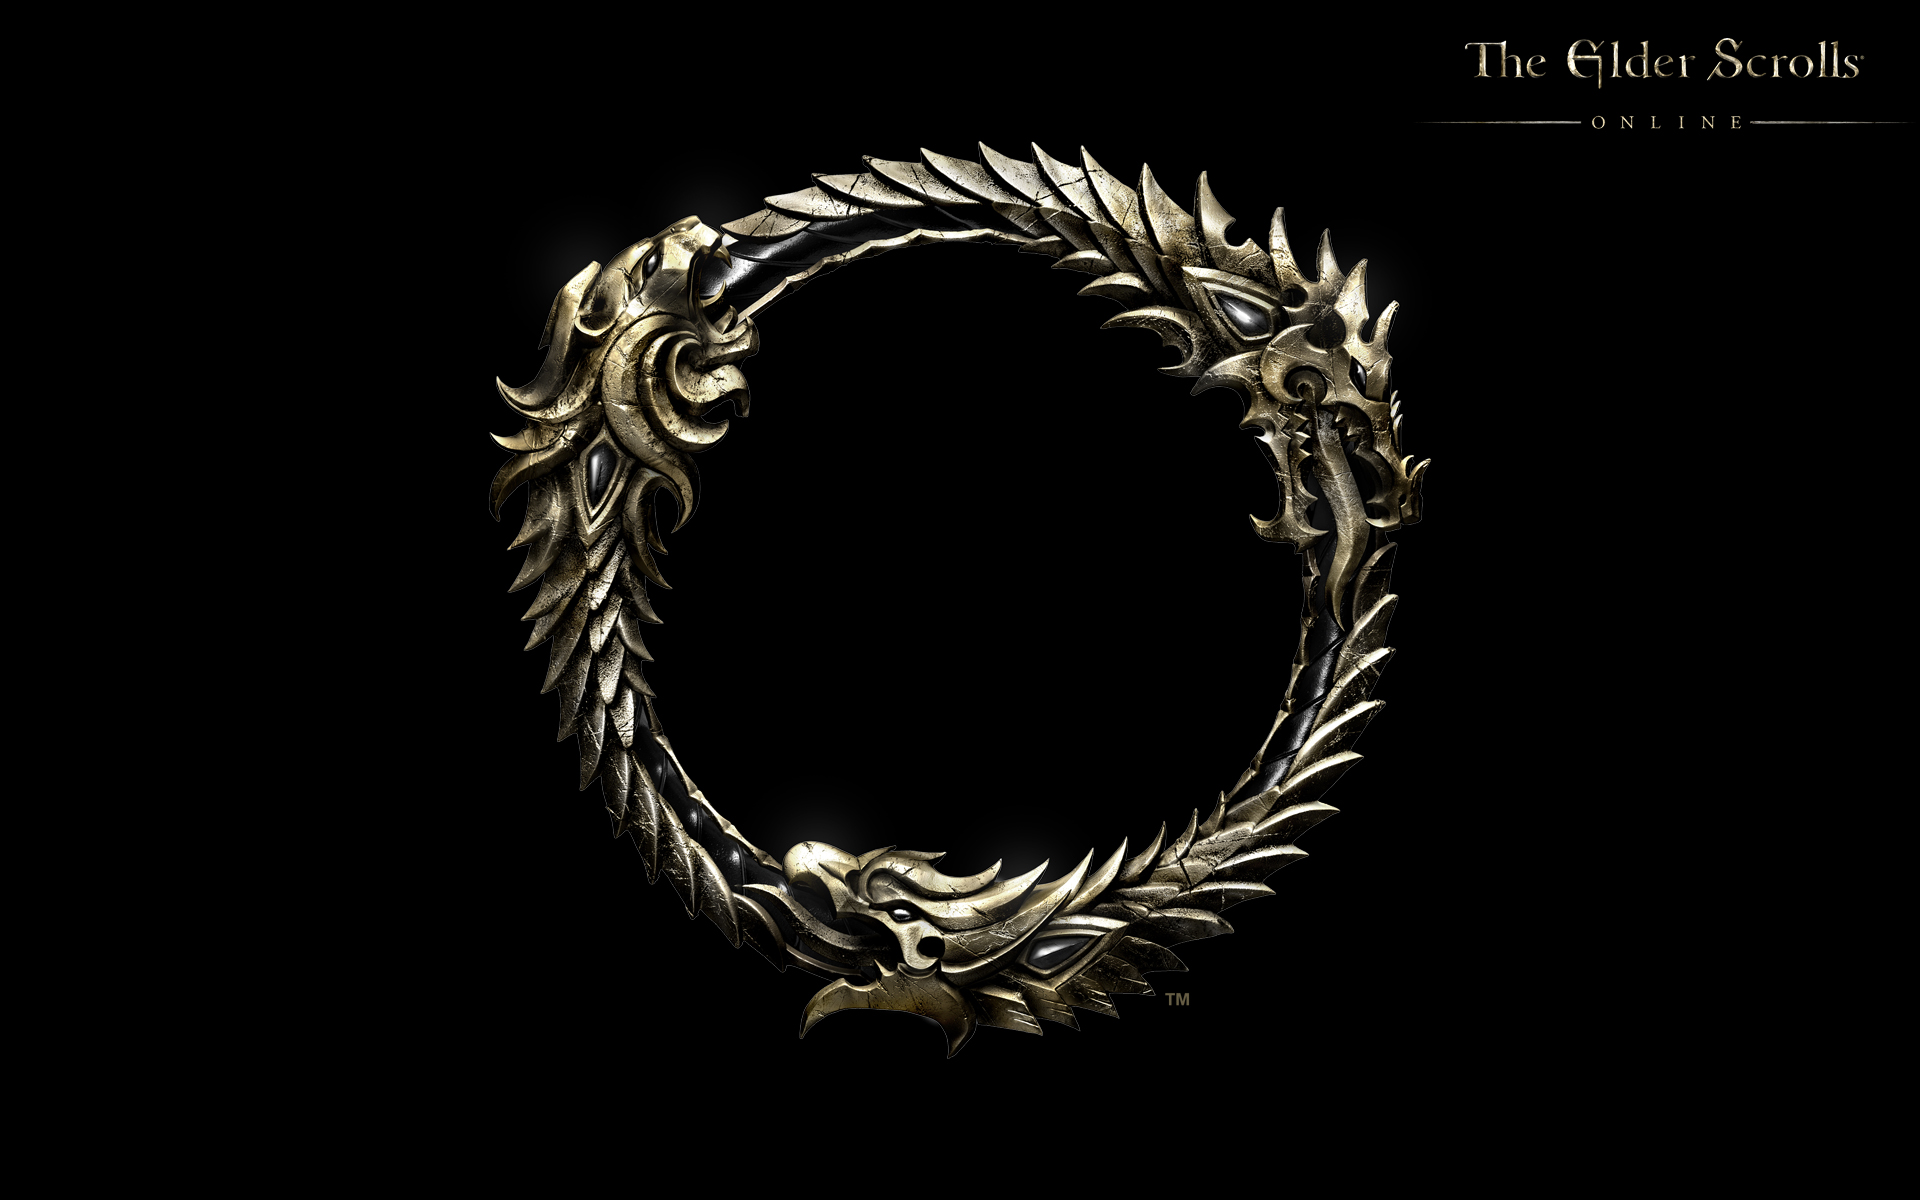 Wallpaper The Elder Scrolls Online: Ouroboros